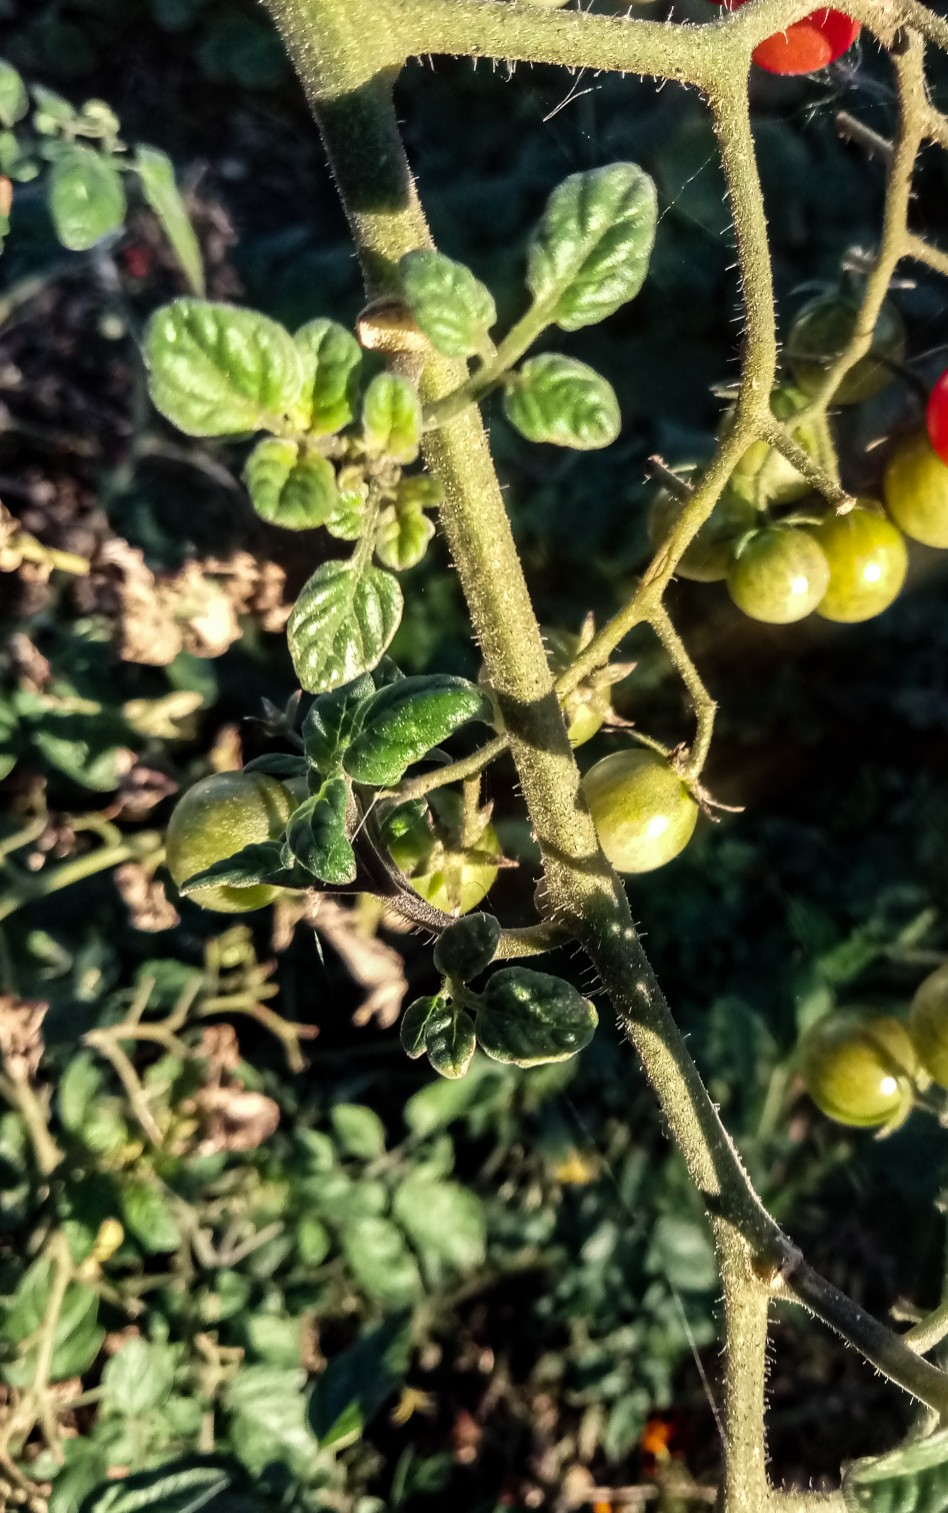 Cherry tomatoes photo 11